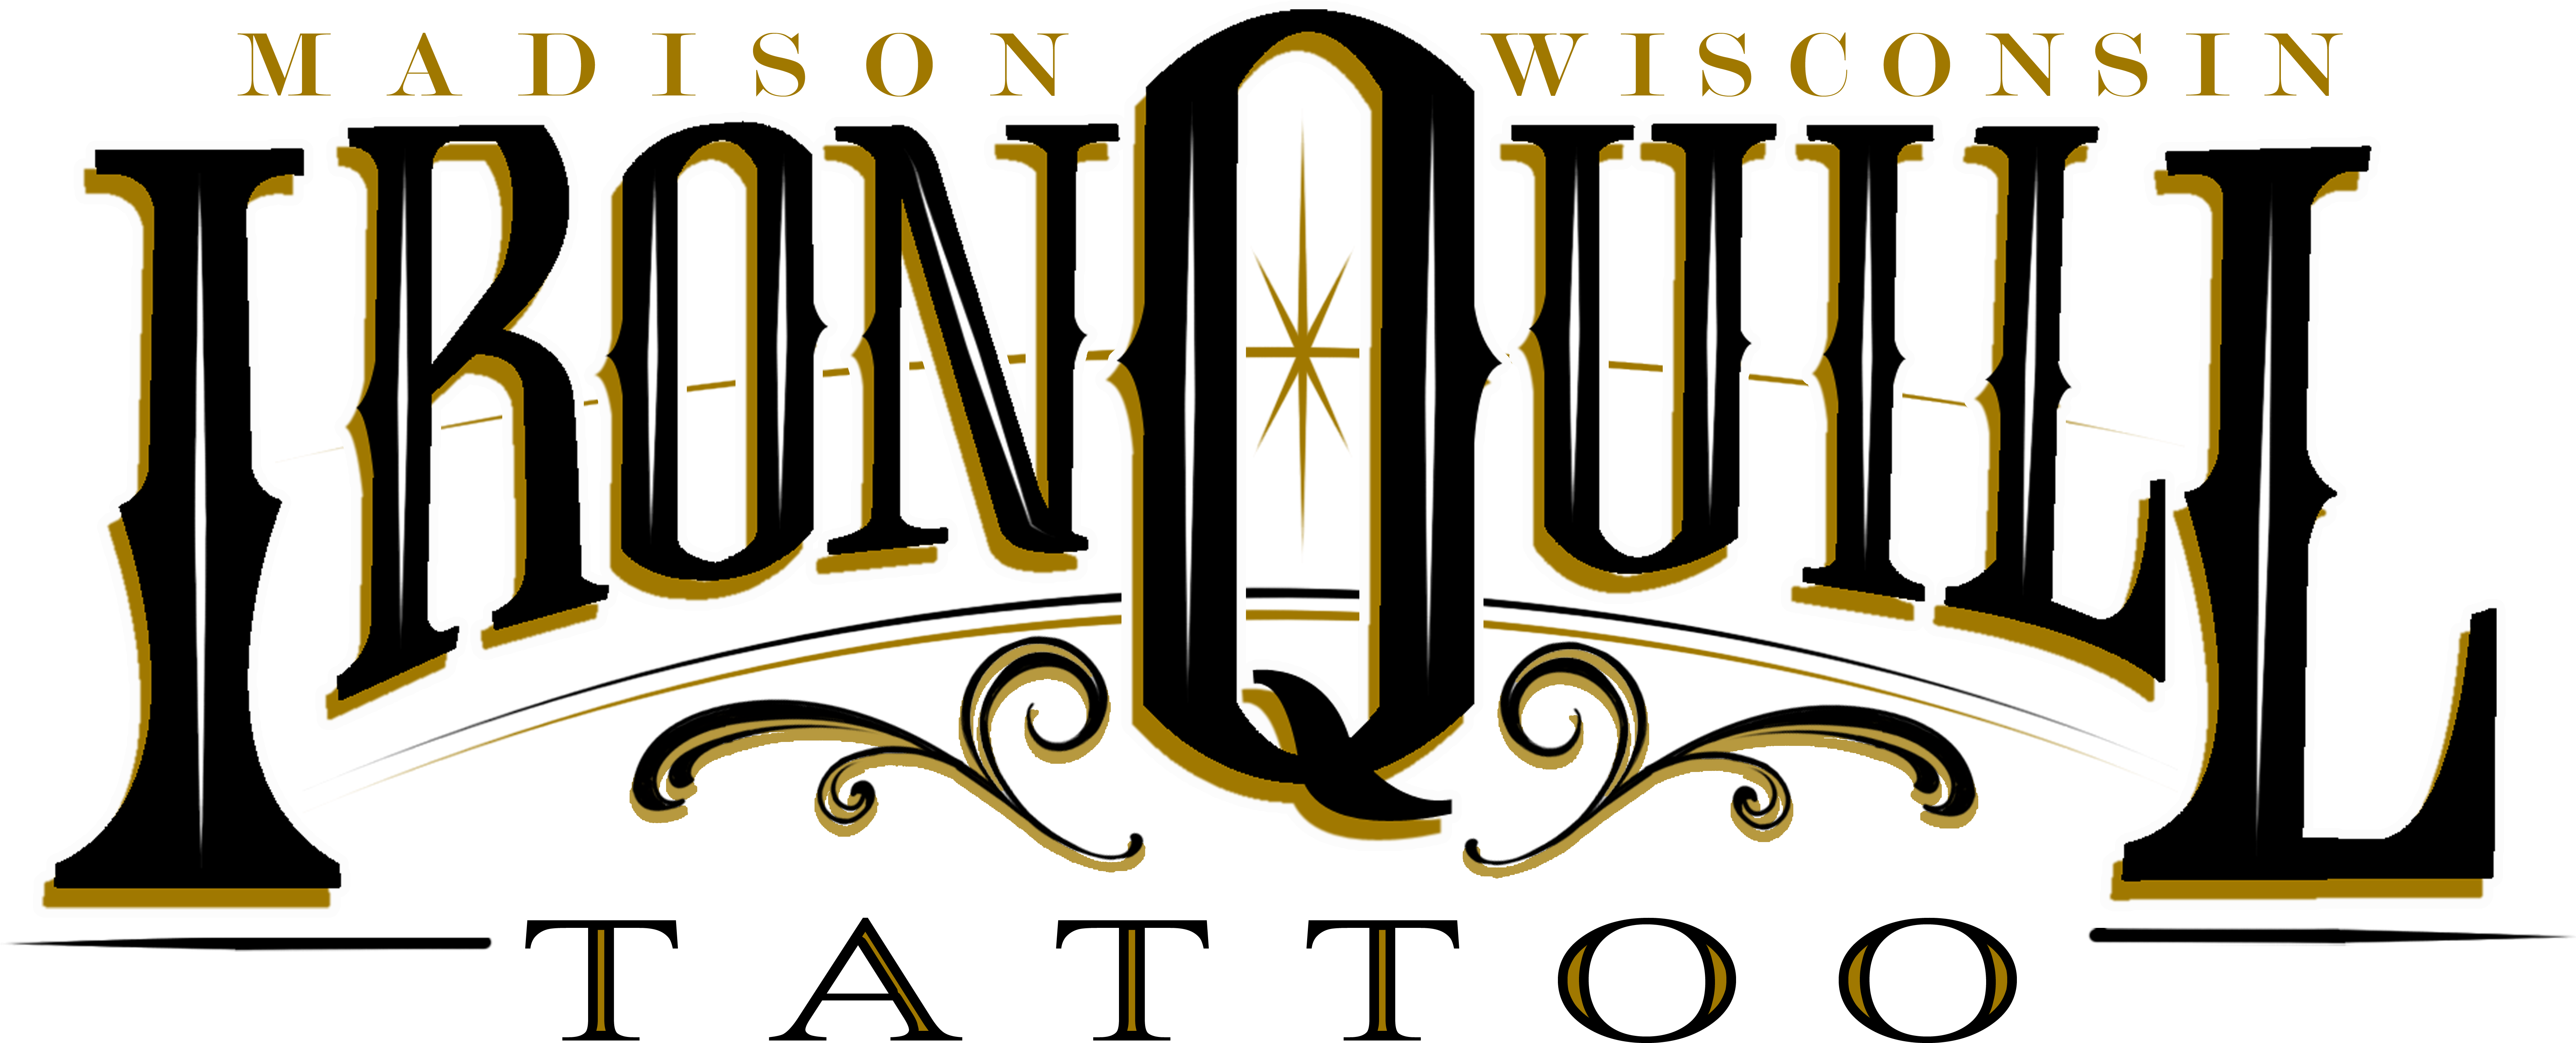 HD Our Mission Is To Be Your Favorite Madison Tattoo Studio.